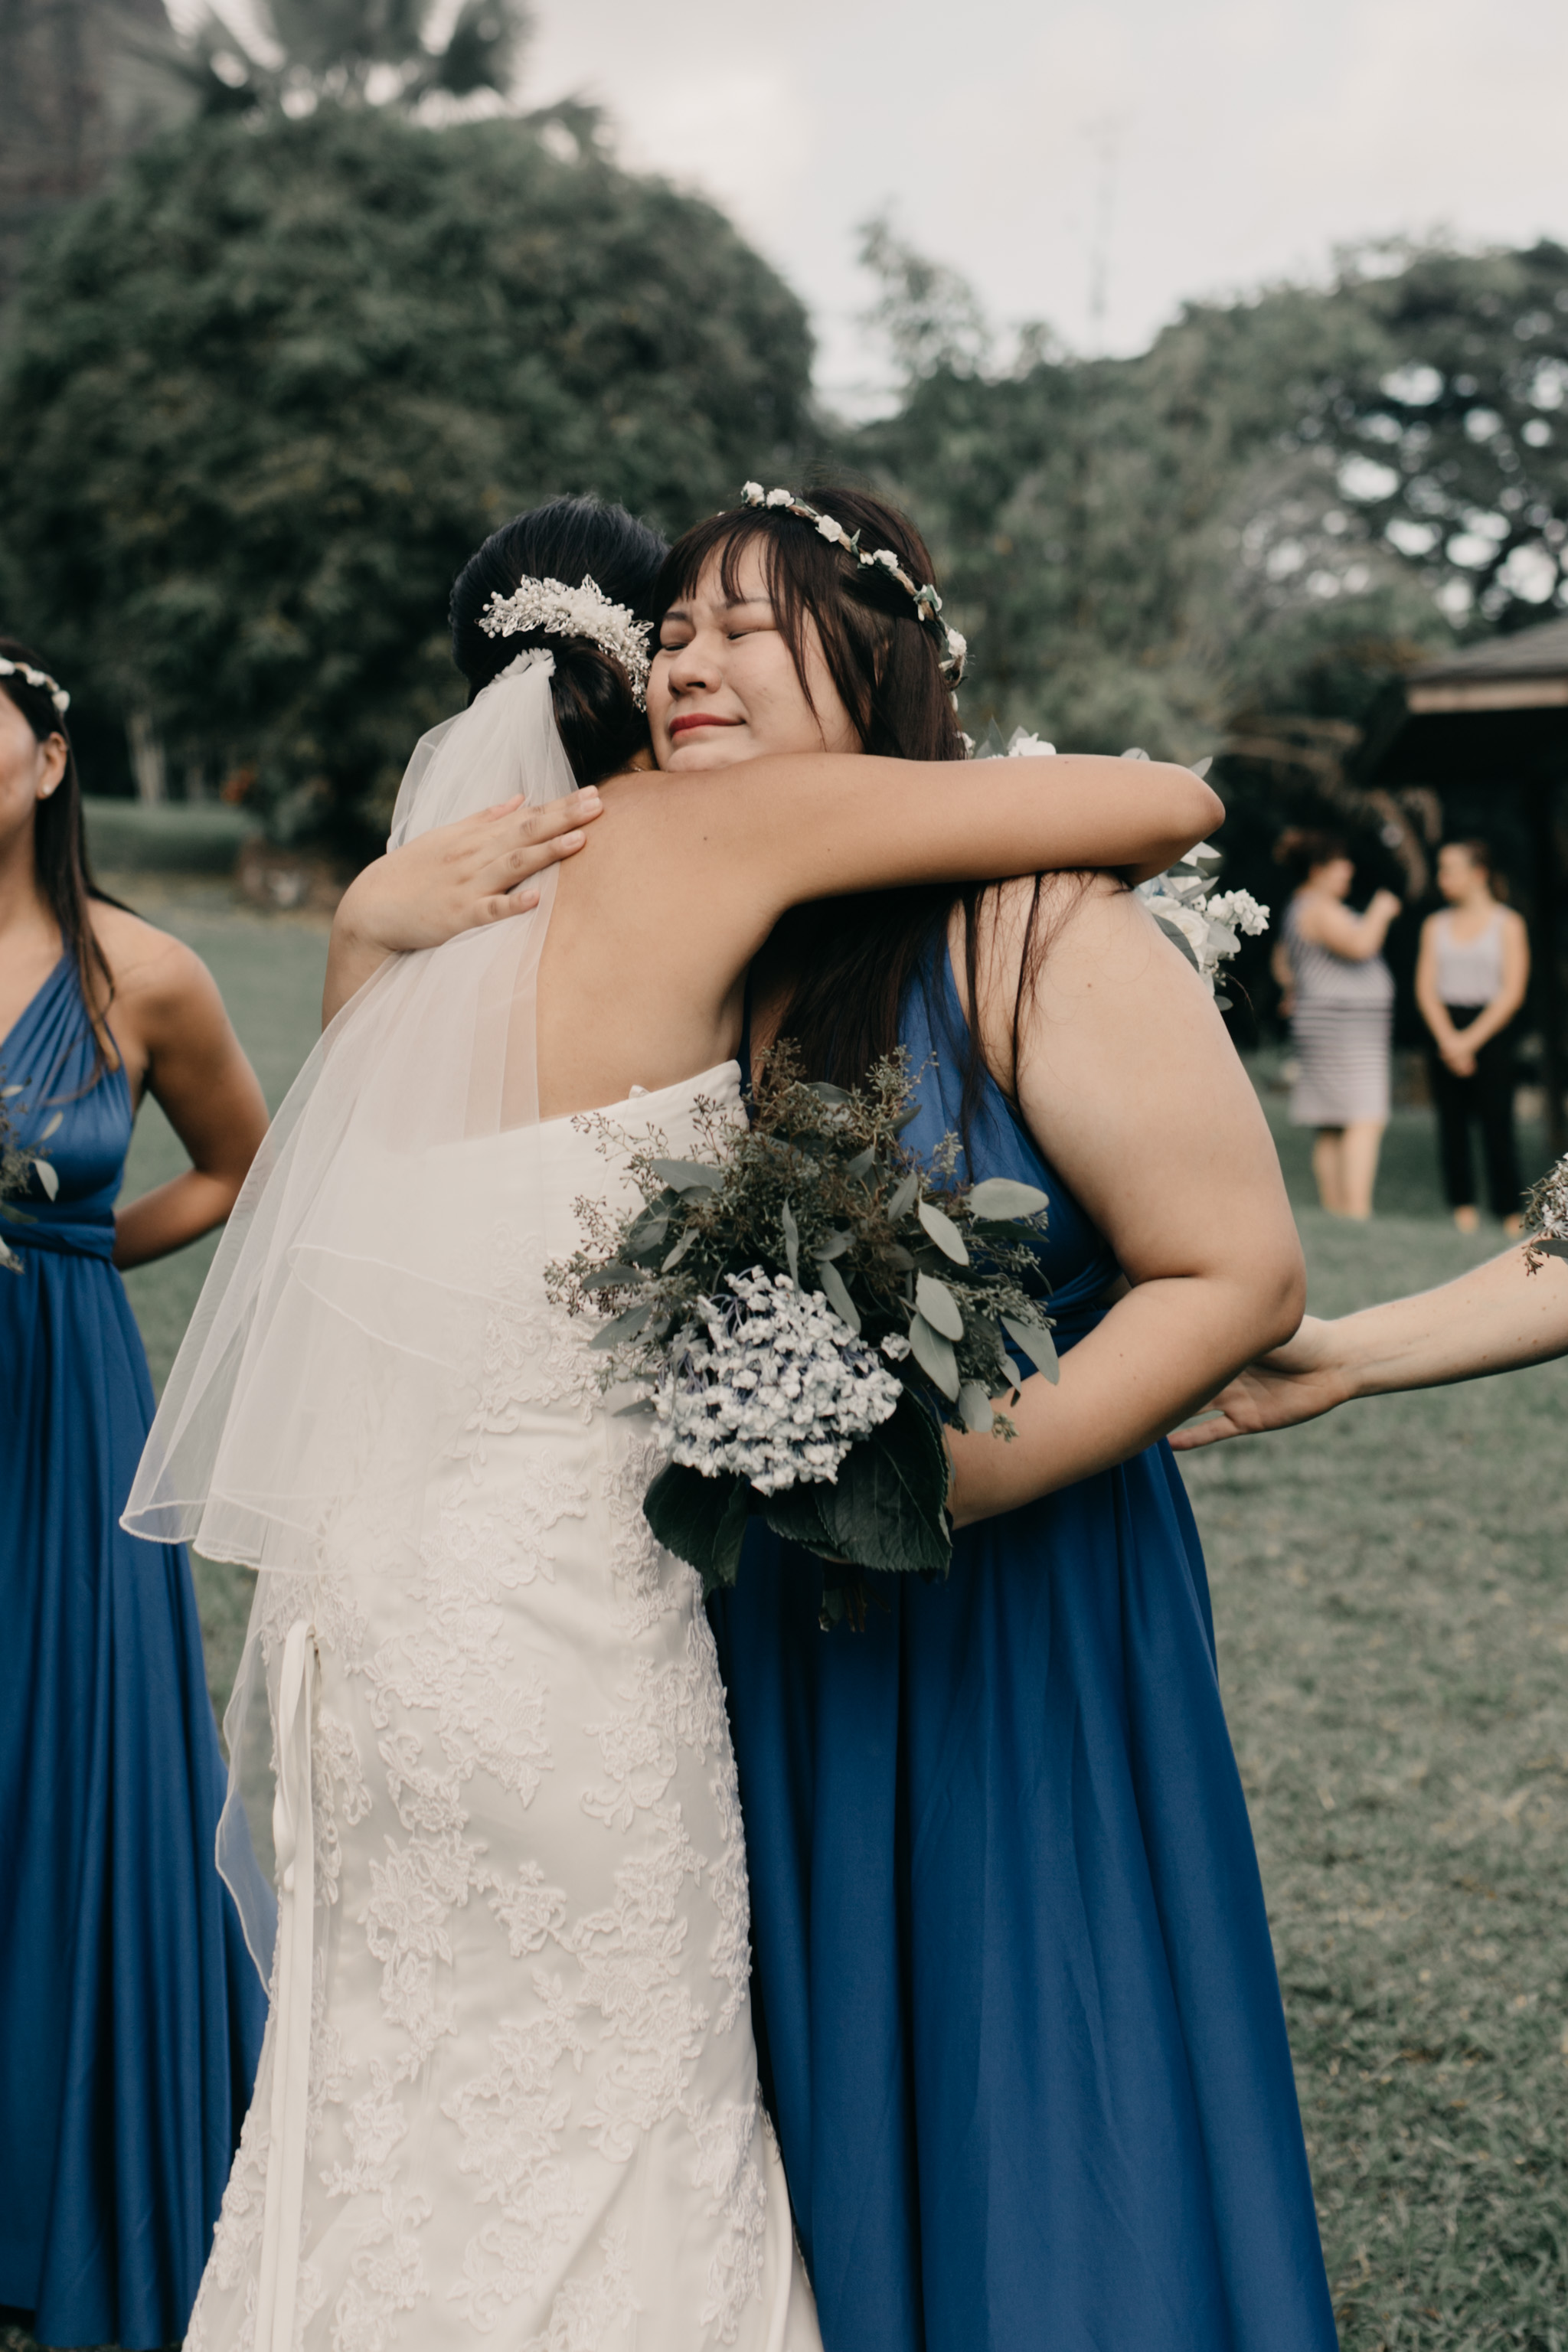 Emotional congratulations at Kualoa Ranch Paliku Gardens. Photography by Hawaii wedding photographer Desiree Leilani